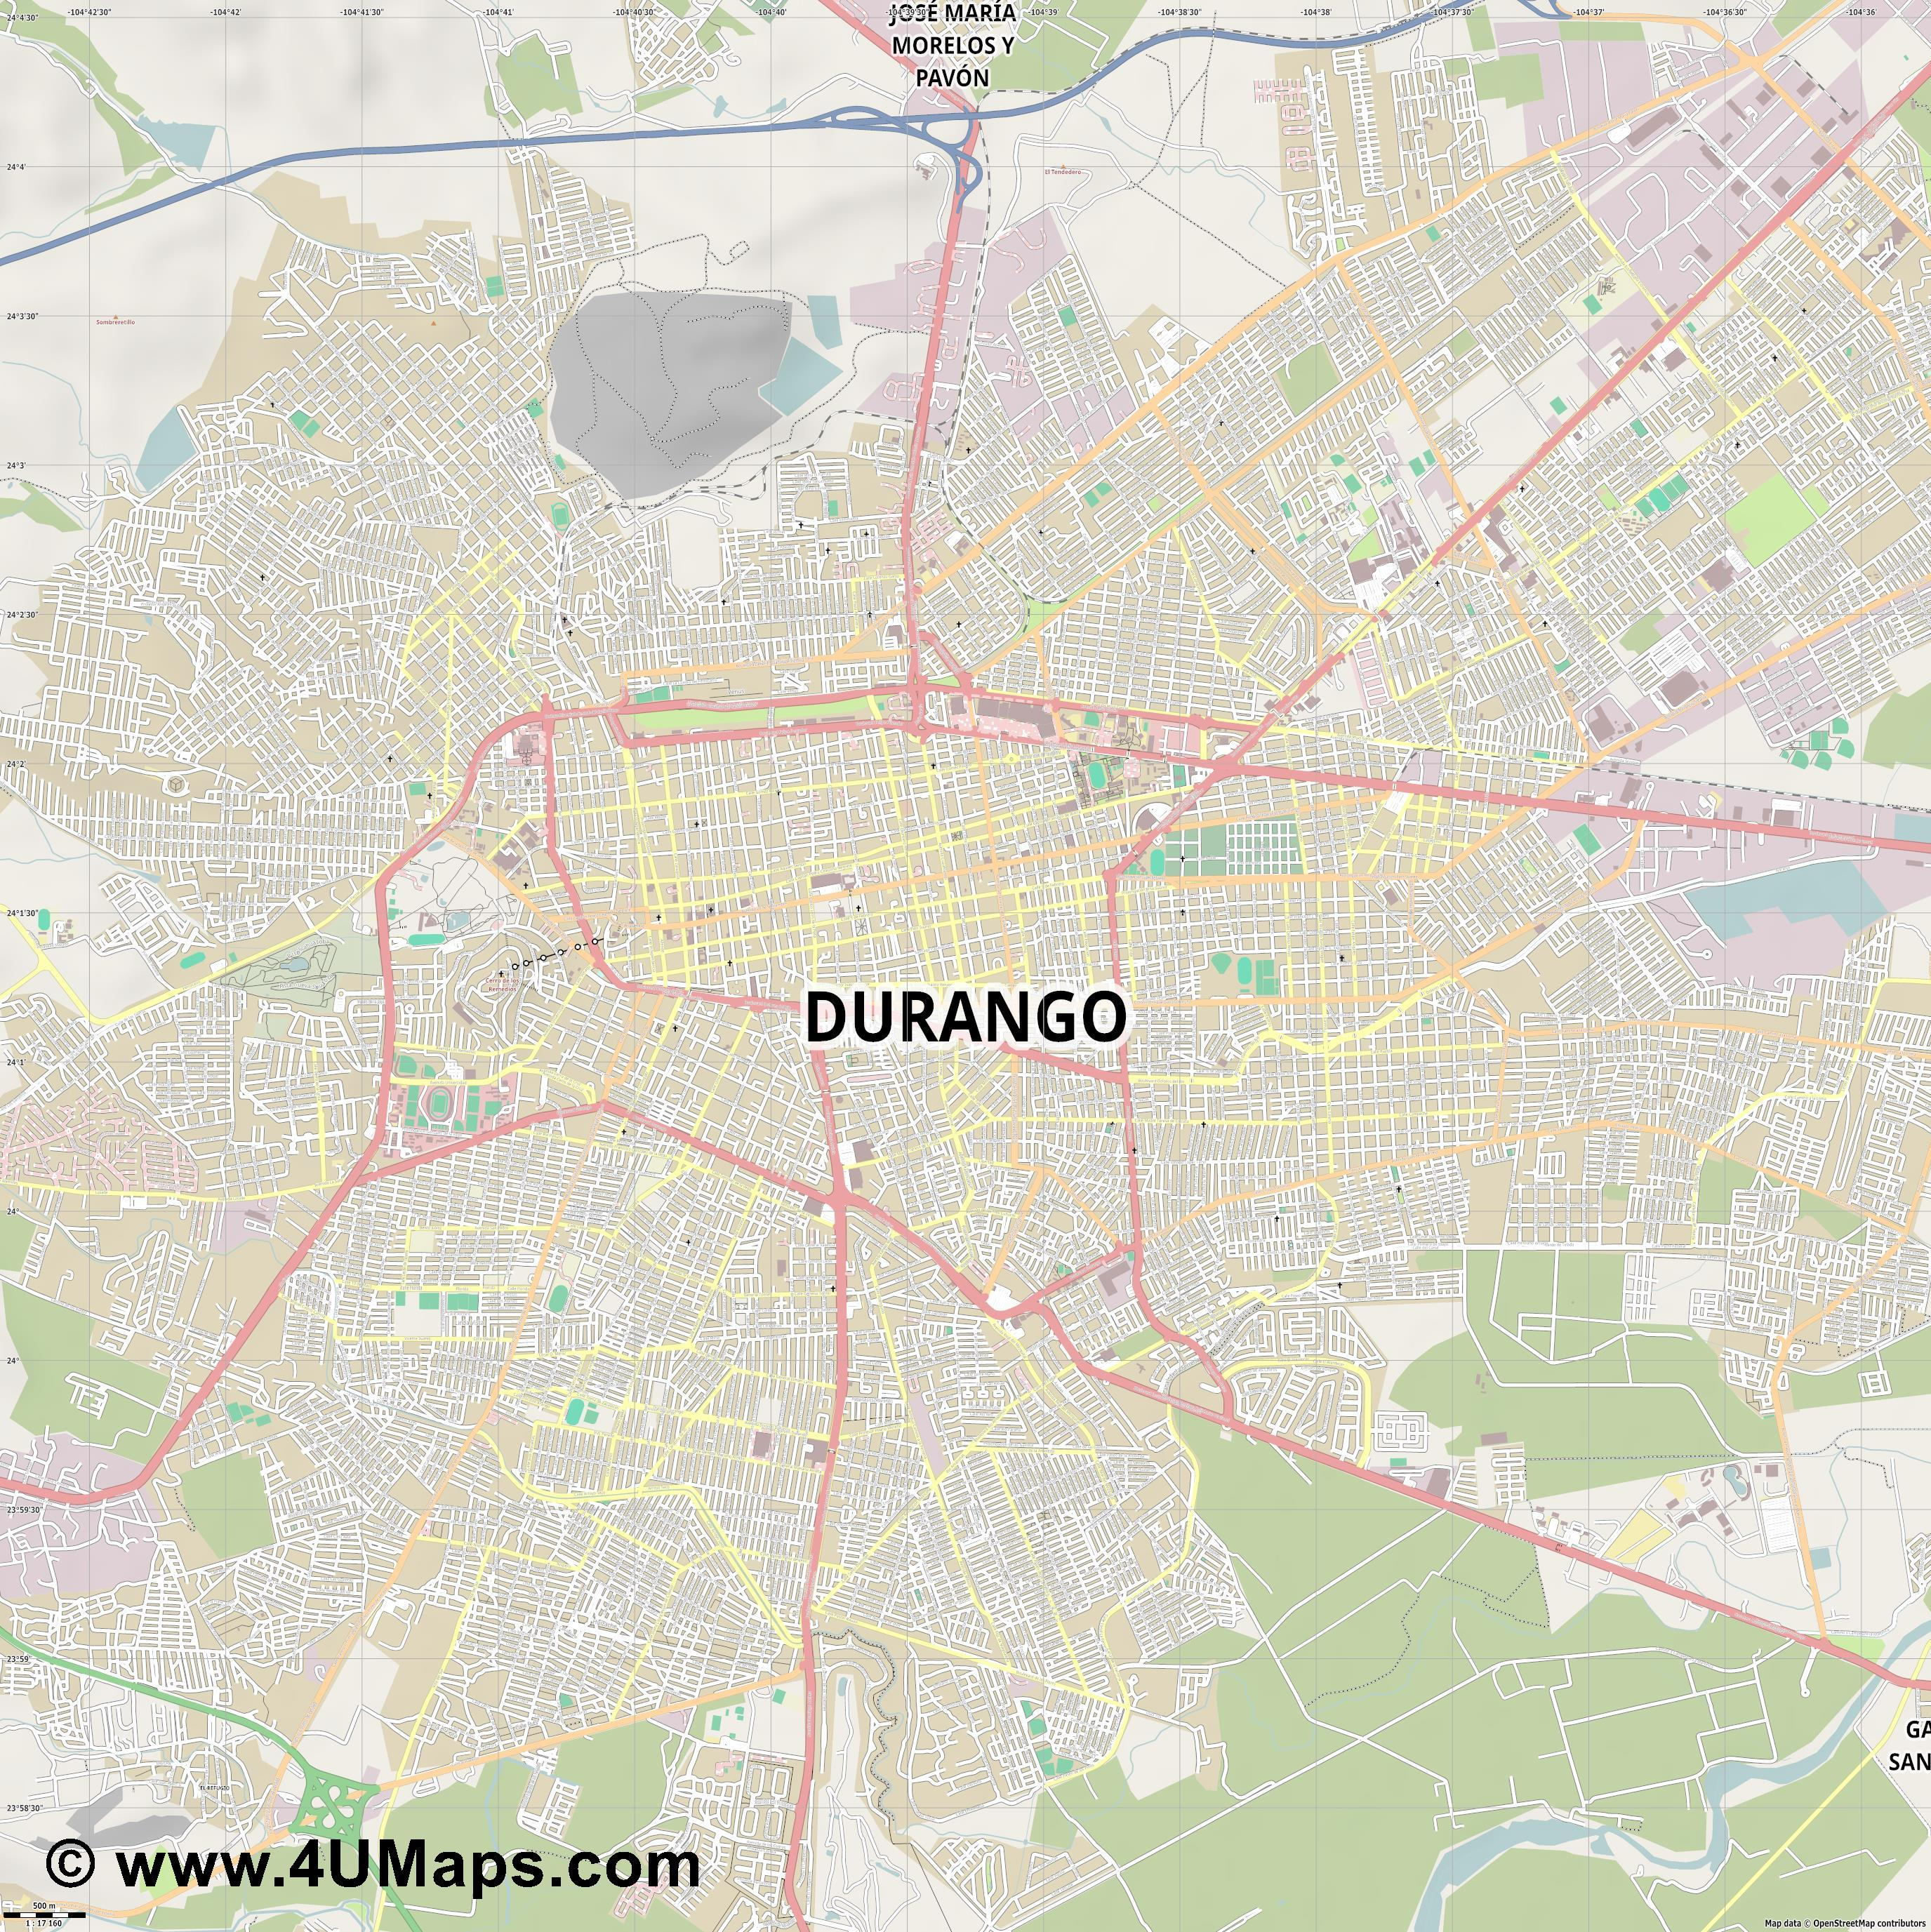 Durango Victoria de Durango  jpg ultra high detail preview vector city map